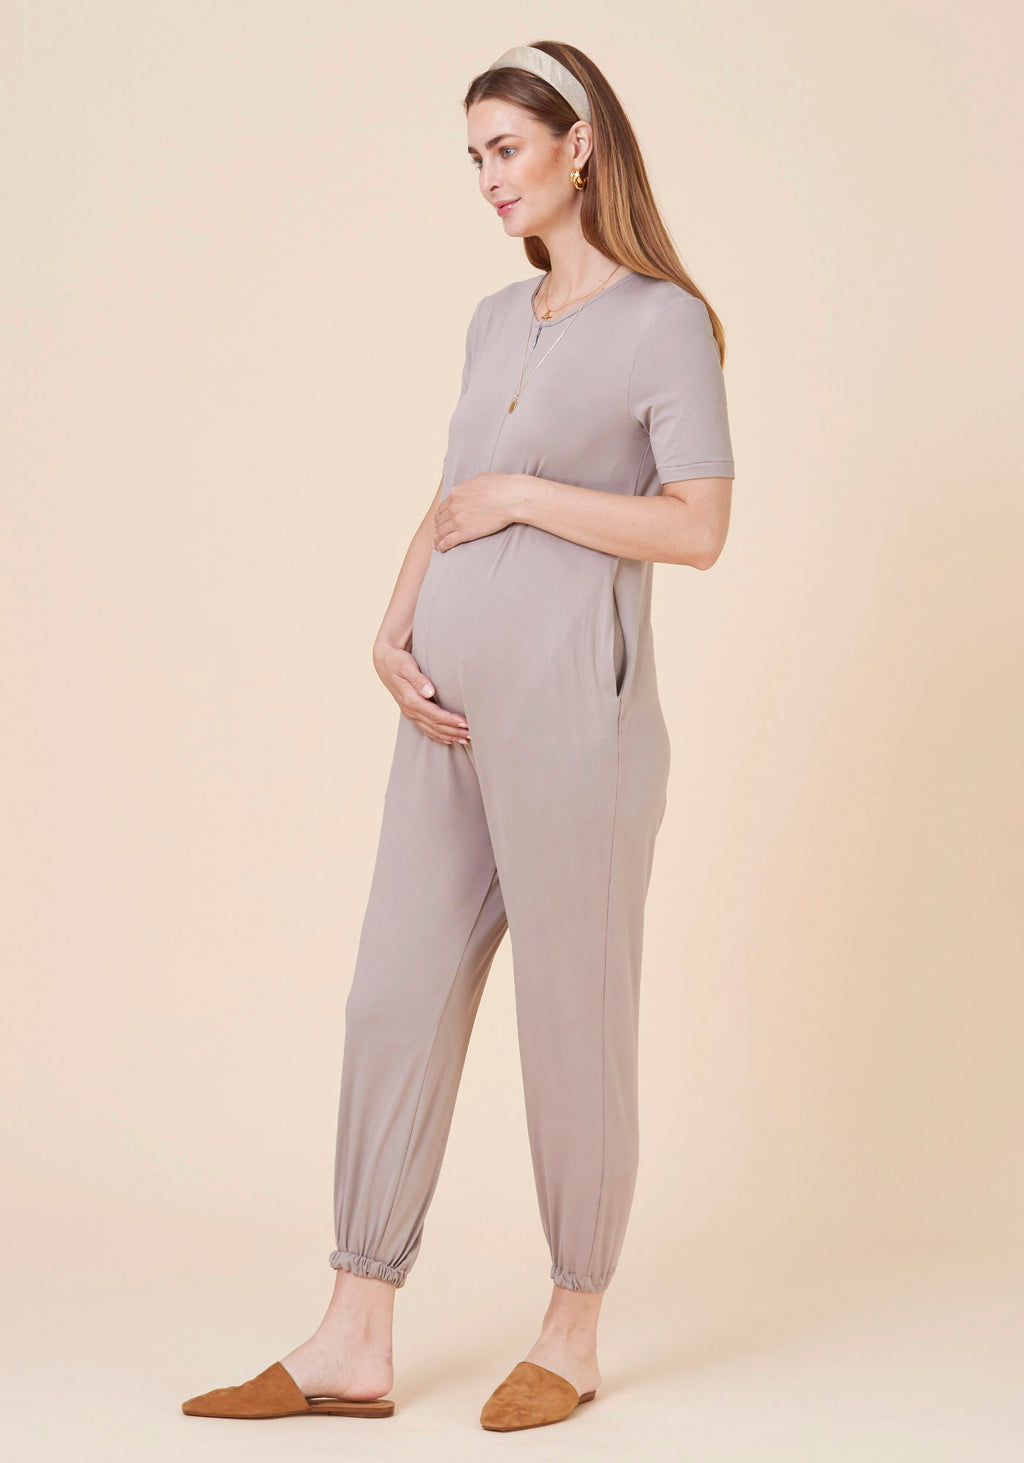 SUPER SOFT & STRETCHY NURSING JUMPSUIT